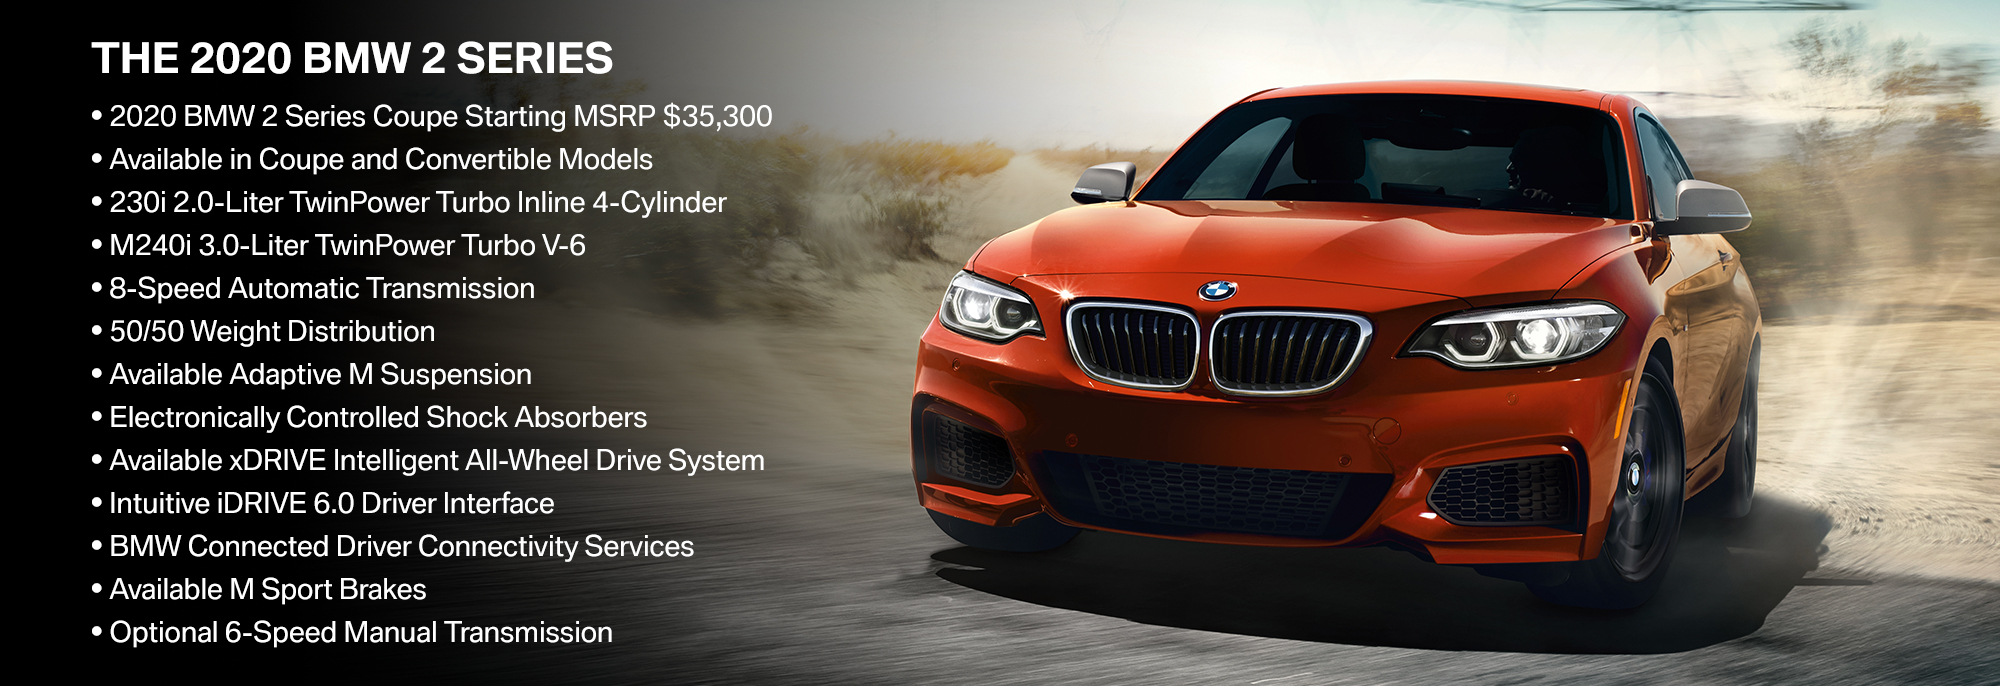 New 2020 BMW 2 Series Offer